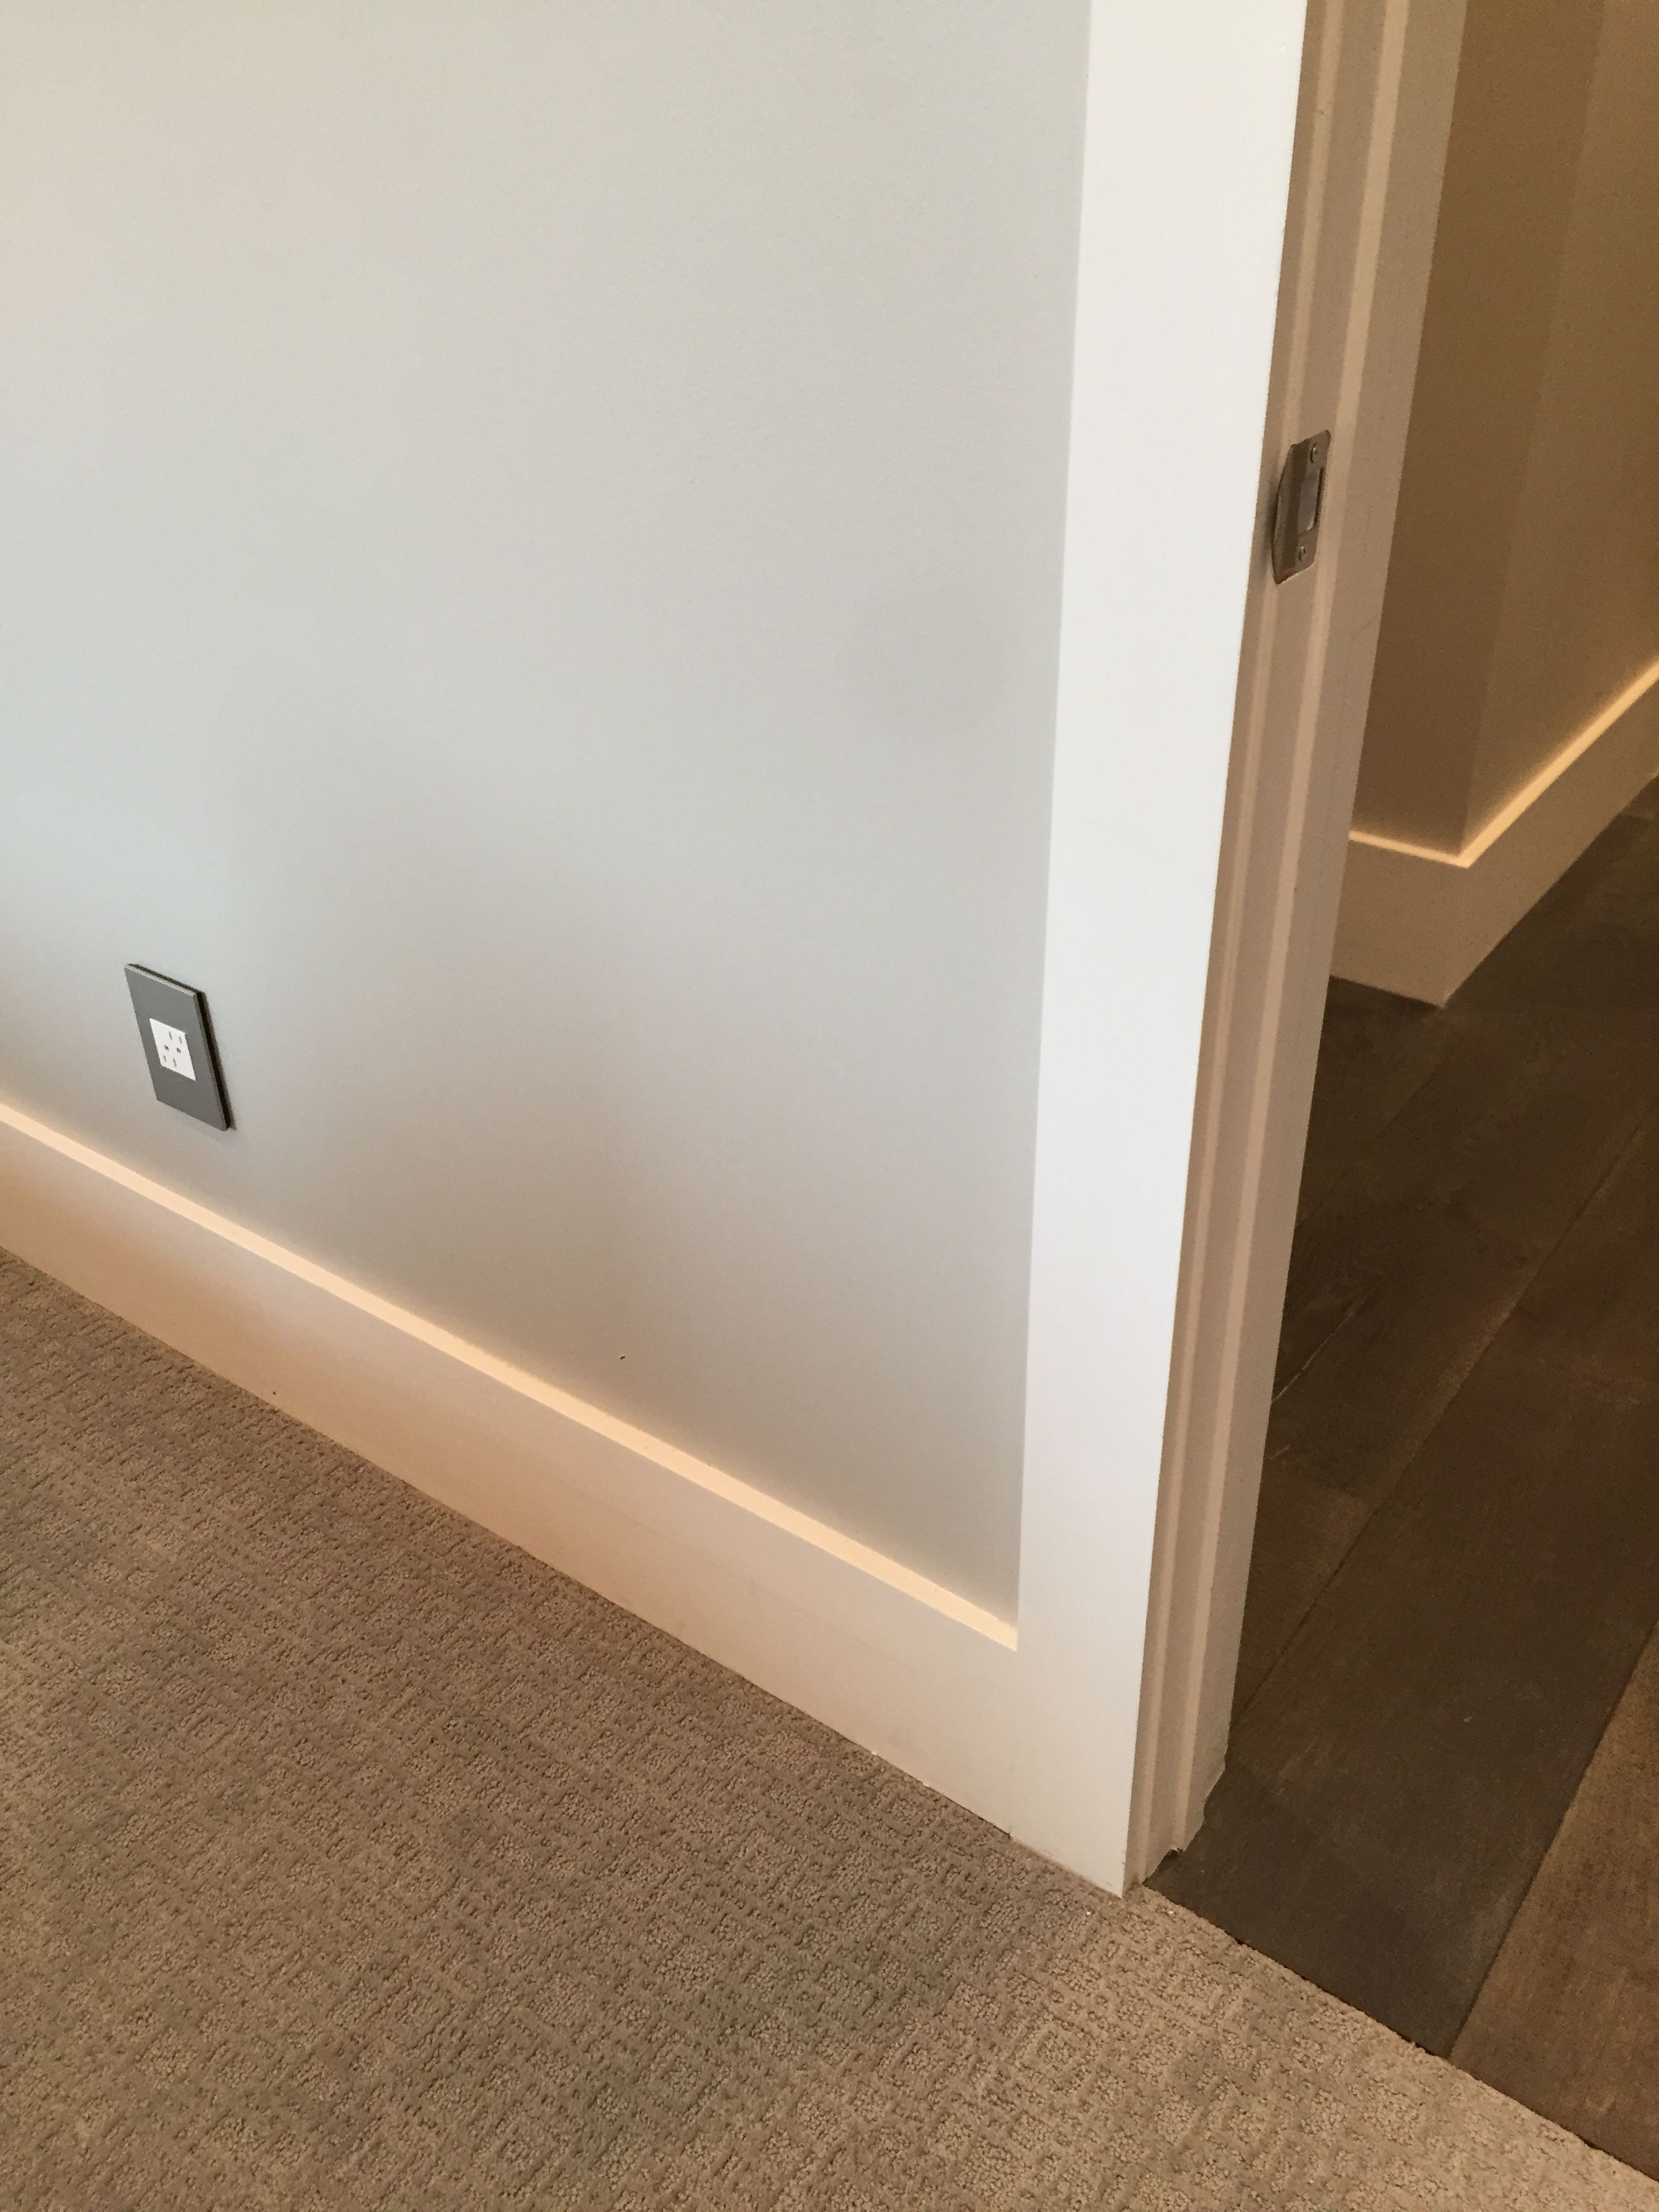 How to cut base molding around wall vent - Baseboard Trim